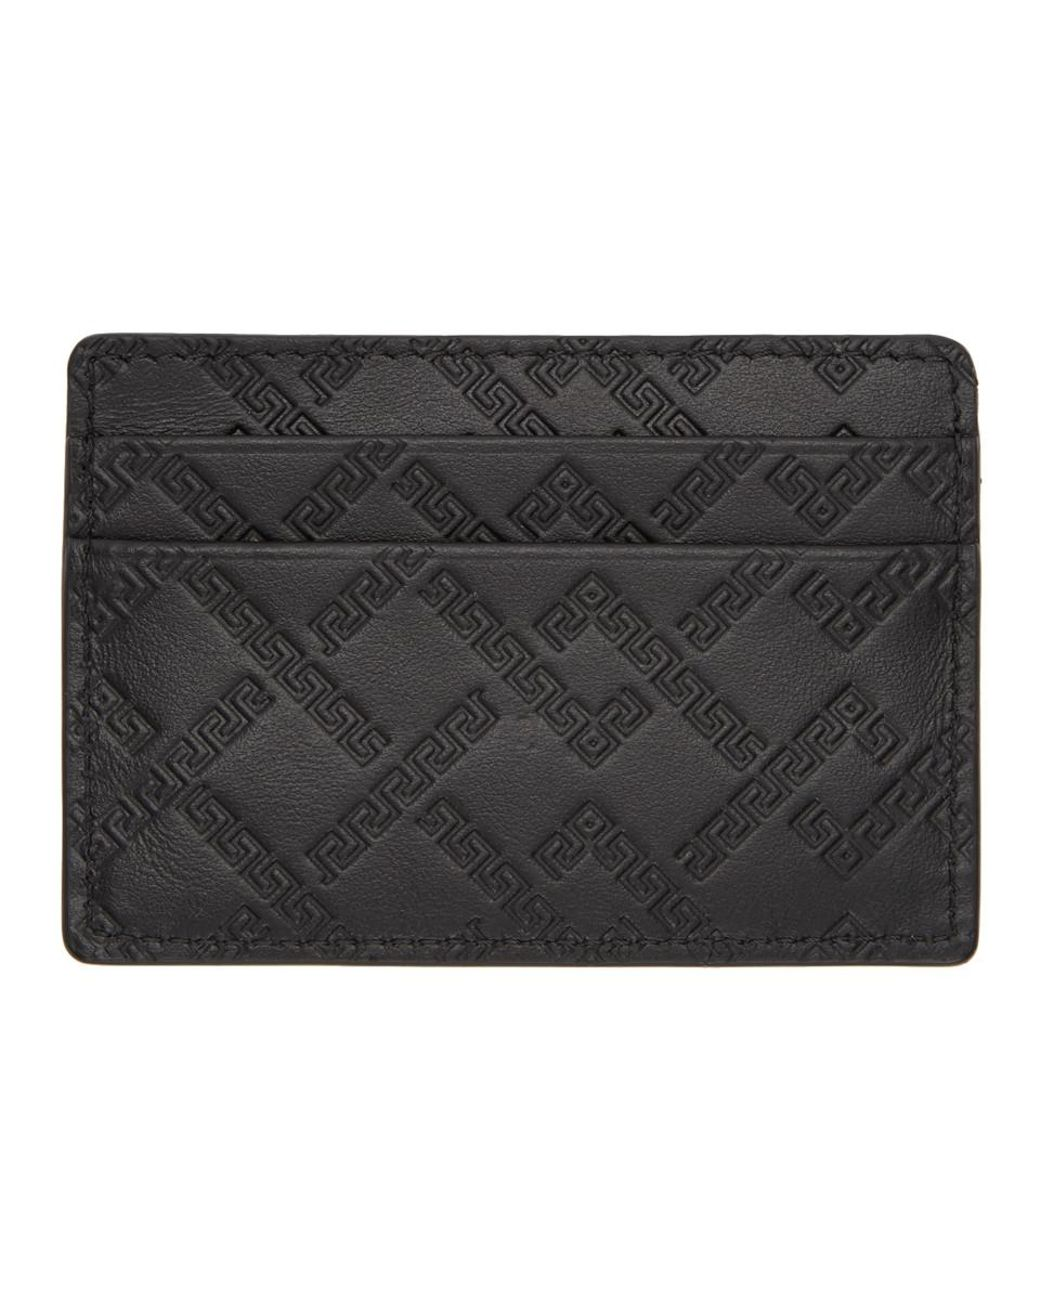 384bcc7bcf Versace Black Greek Key Card Holder in Black for Men - Lyst